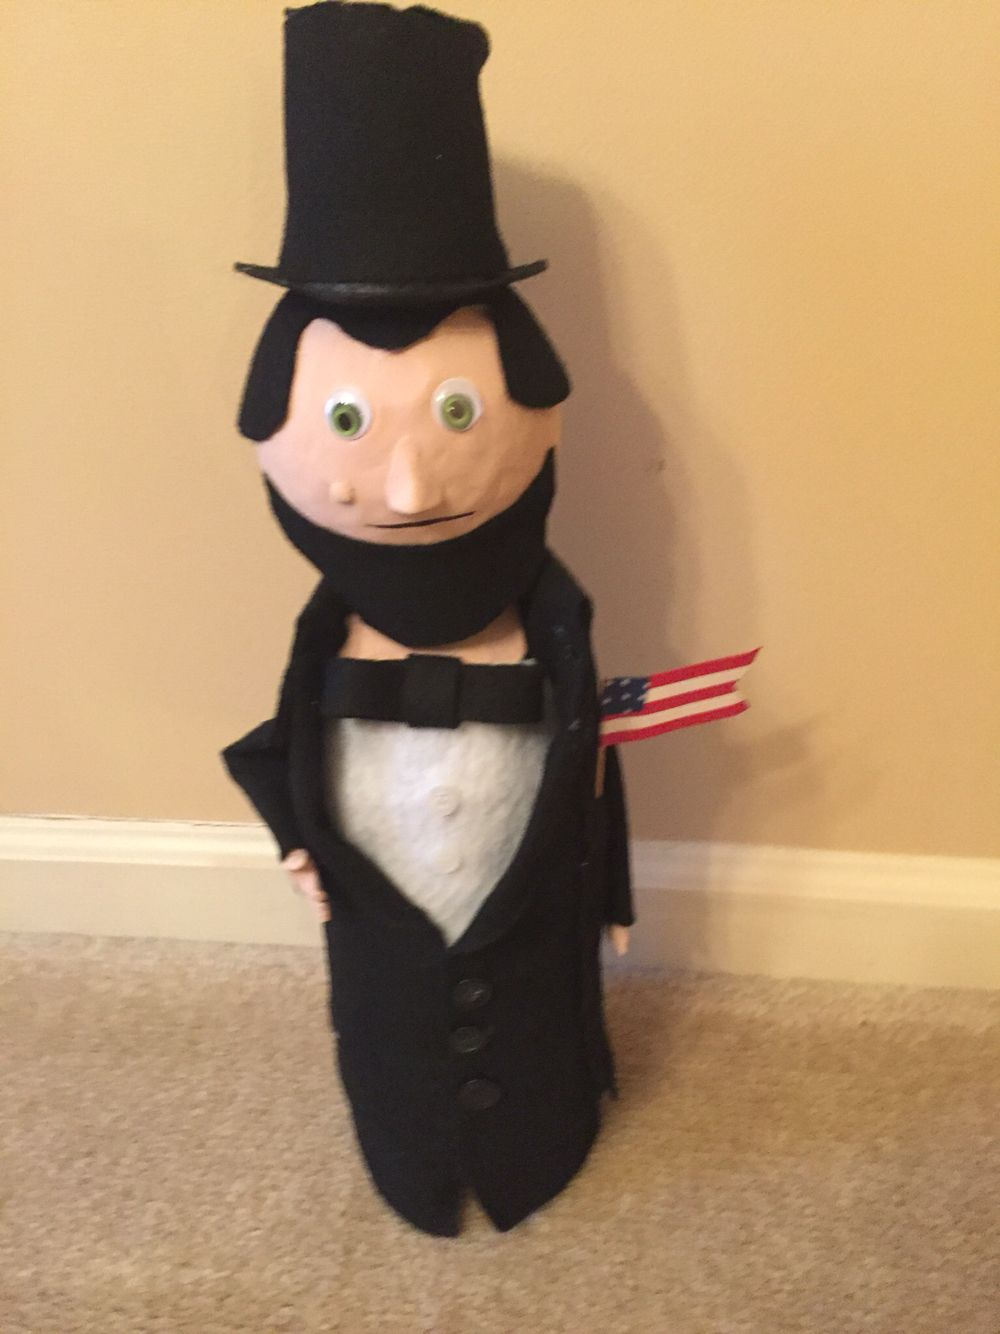 Bottle Buddy Abraham Lincoln & Bottle Buddy Abraham Lincoln | School crafts | Pinterest | Abraham ...